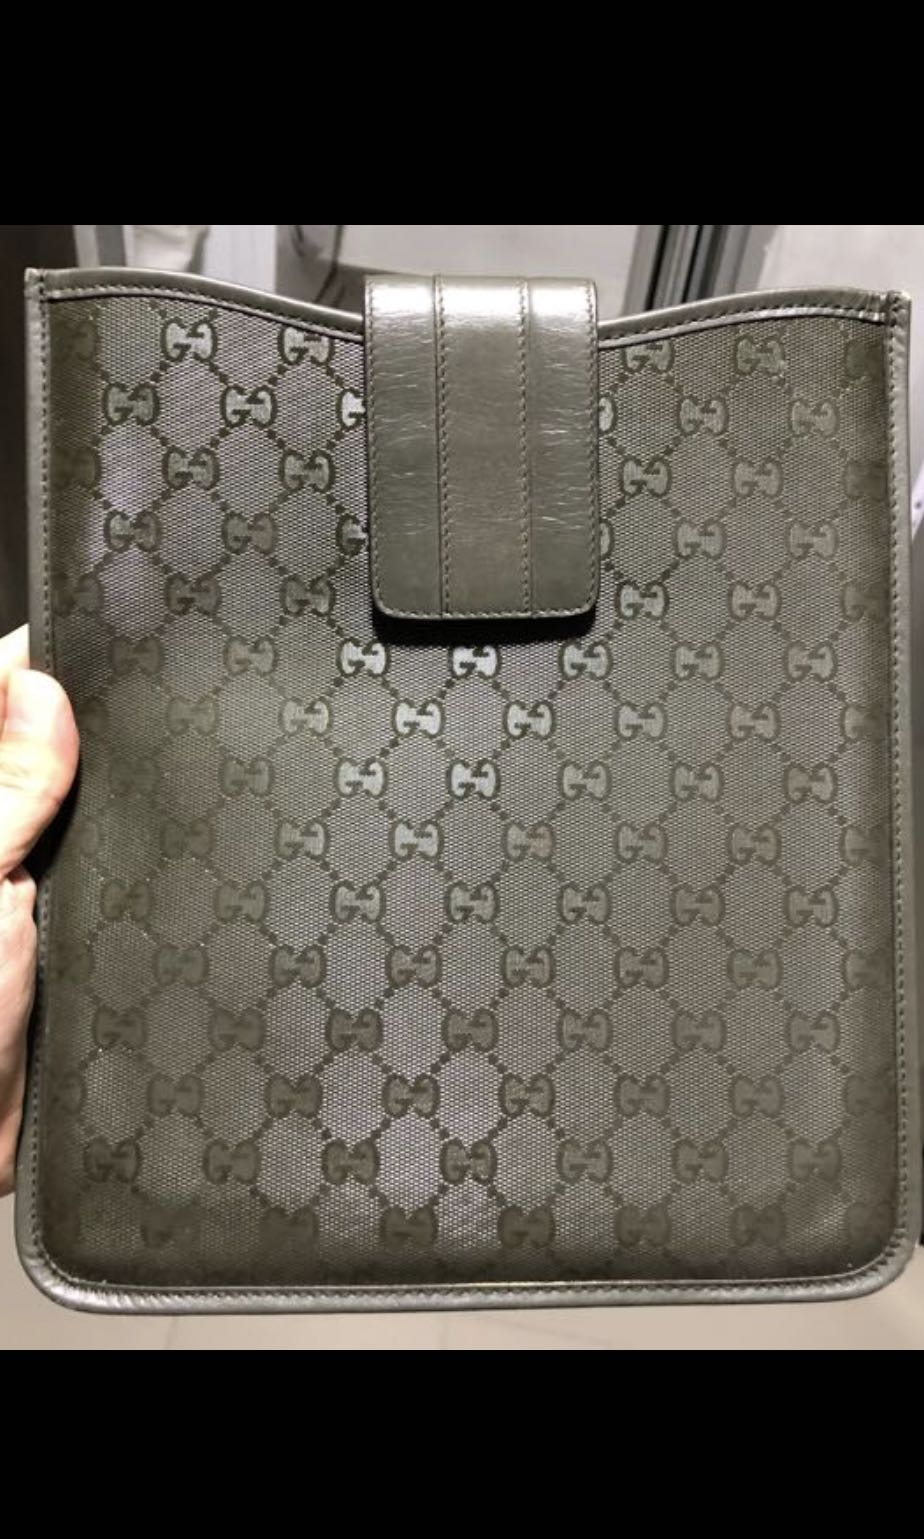 cf182a7f00b Gucci iPad 1 Sleeve Used With No Receipt   Apple Prada Lv Branded Lap Top